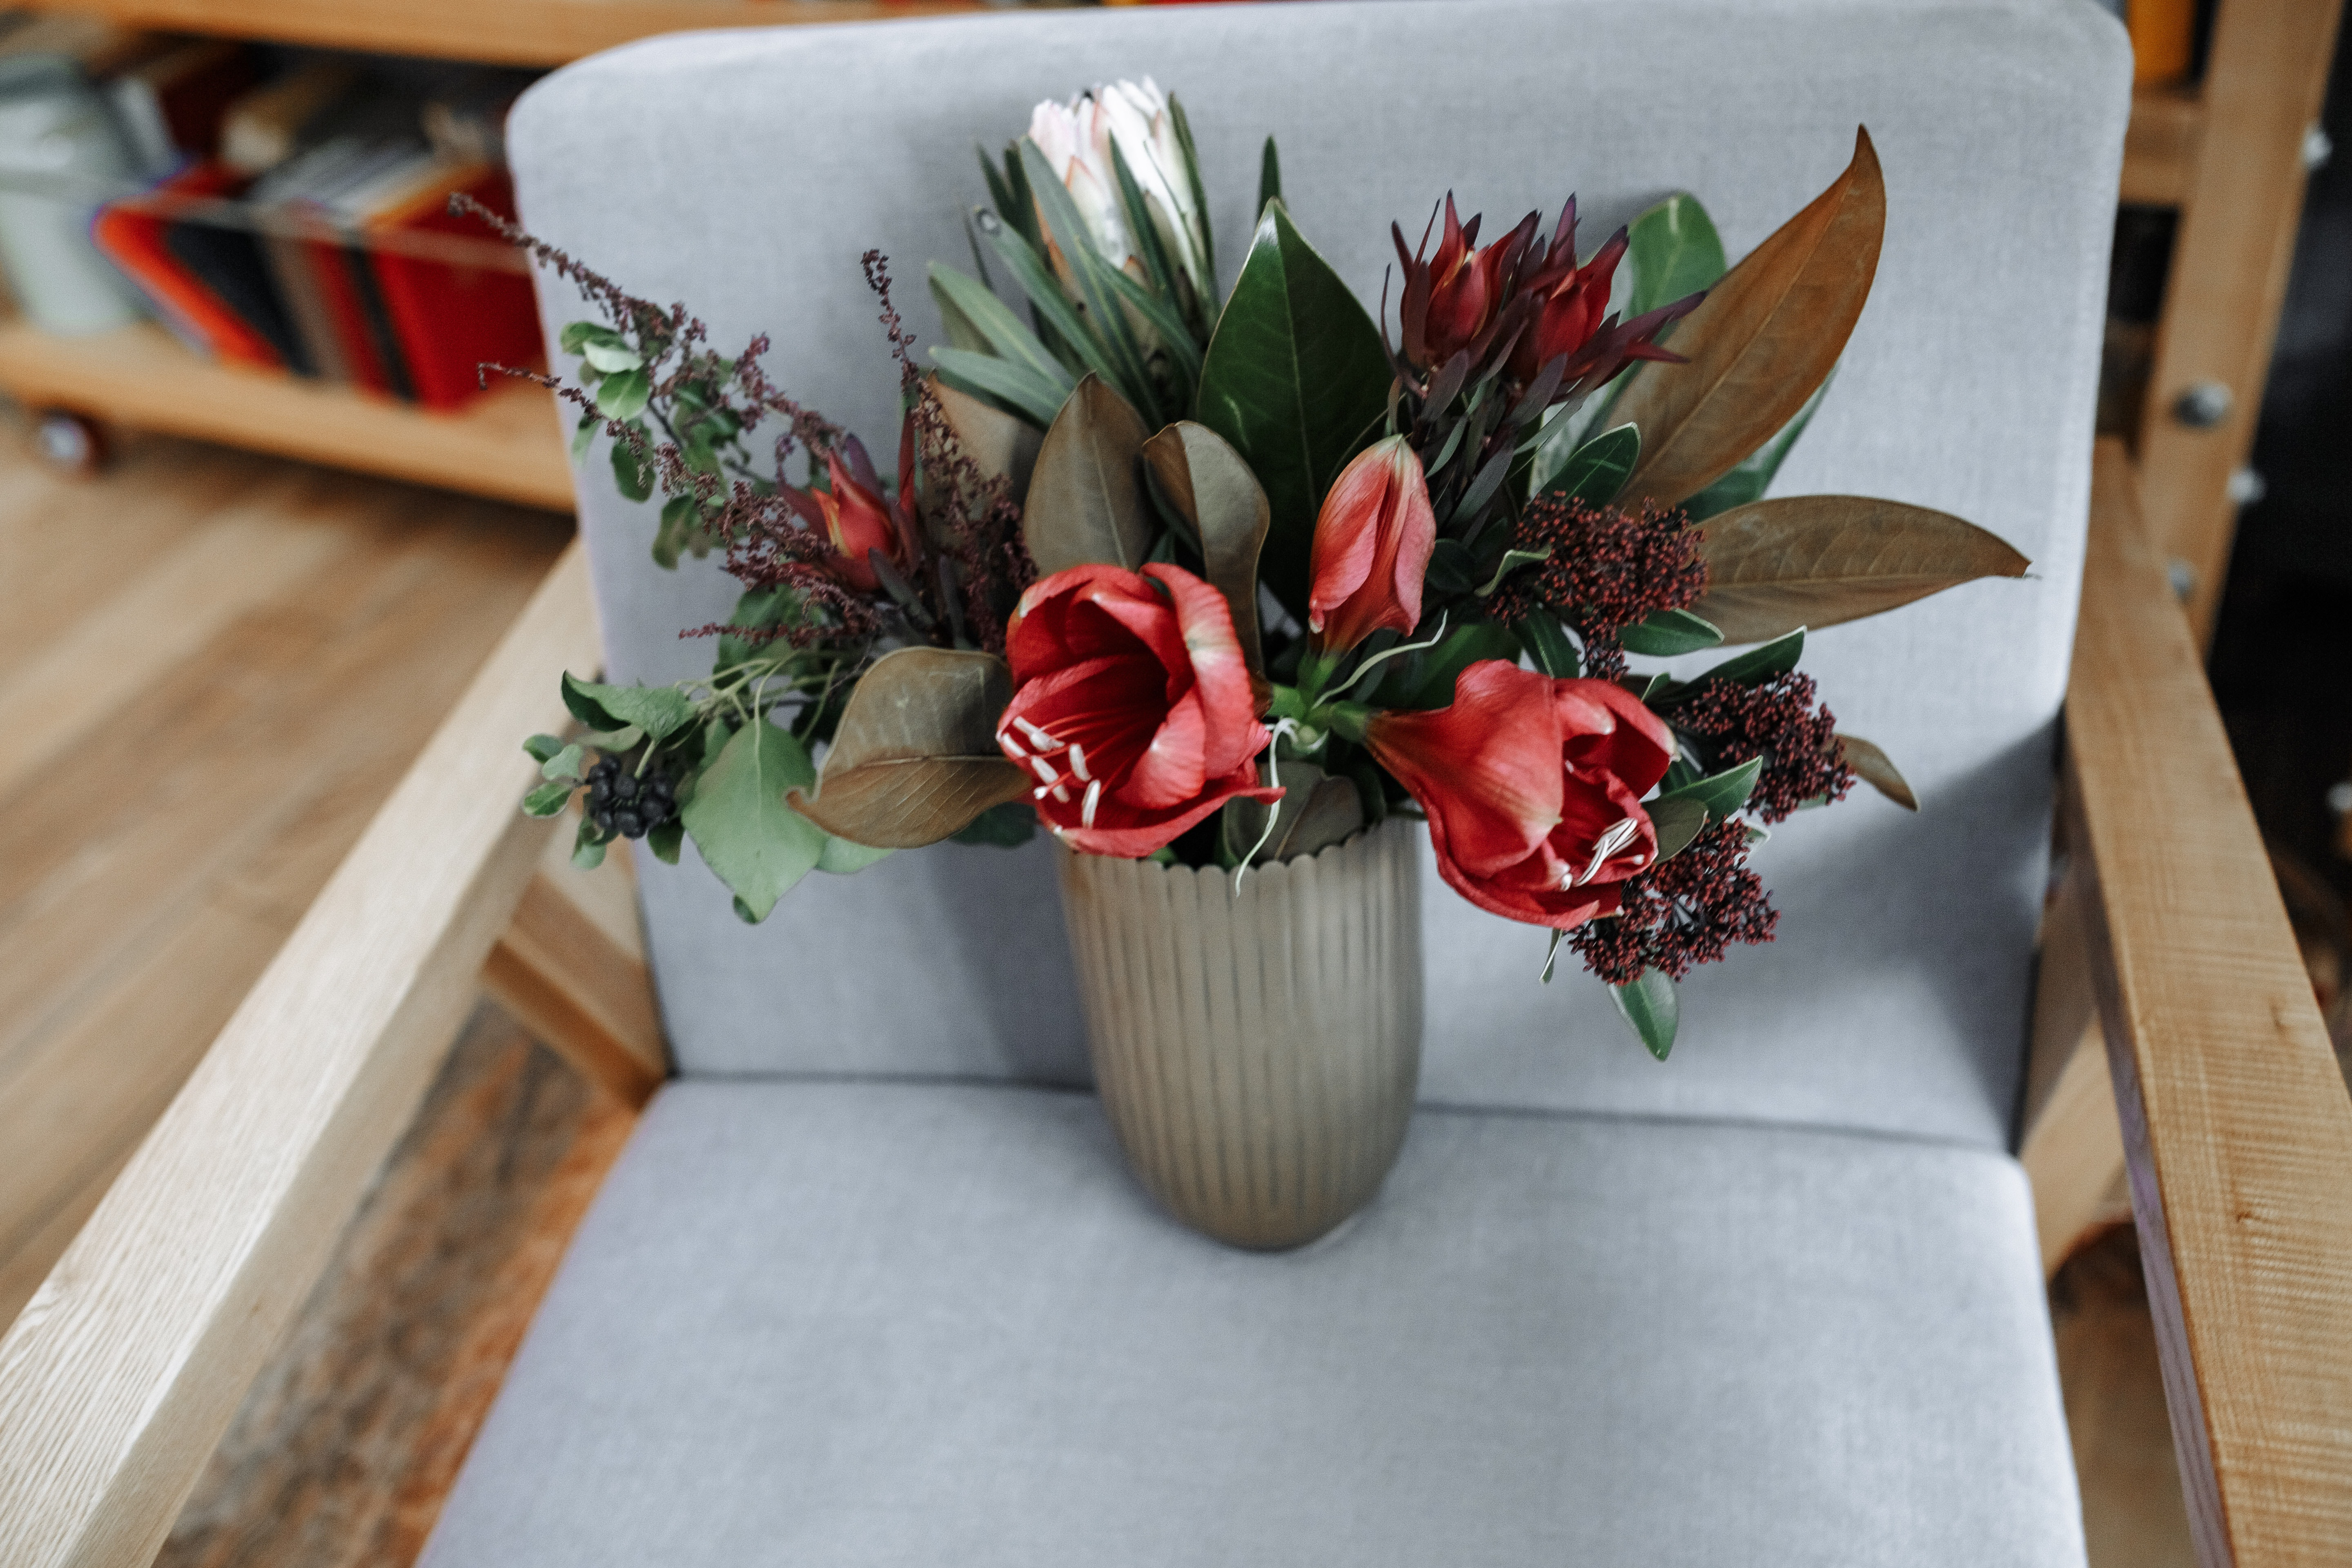 Red Tulip Flowers in Vase on Armchair, Chair, Modern, Wood, Vase, HQ Photo